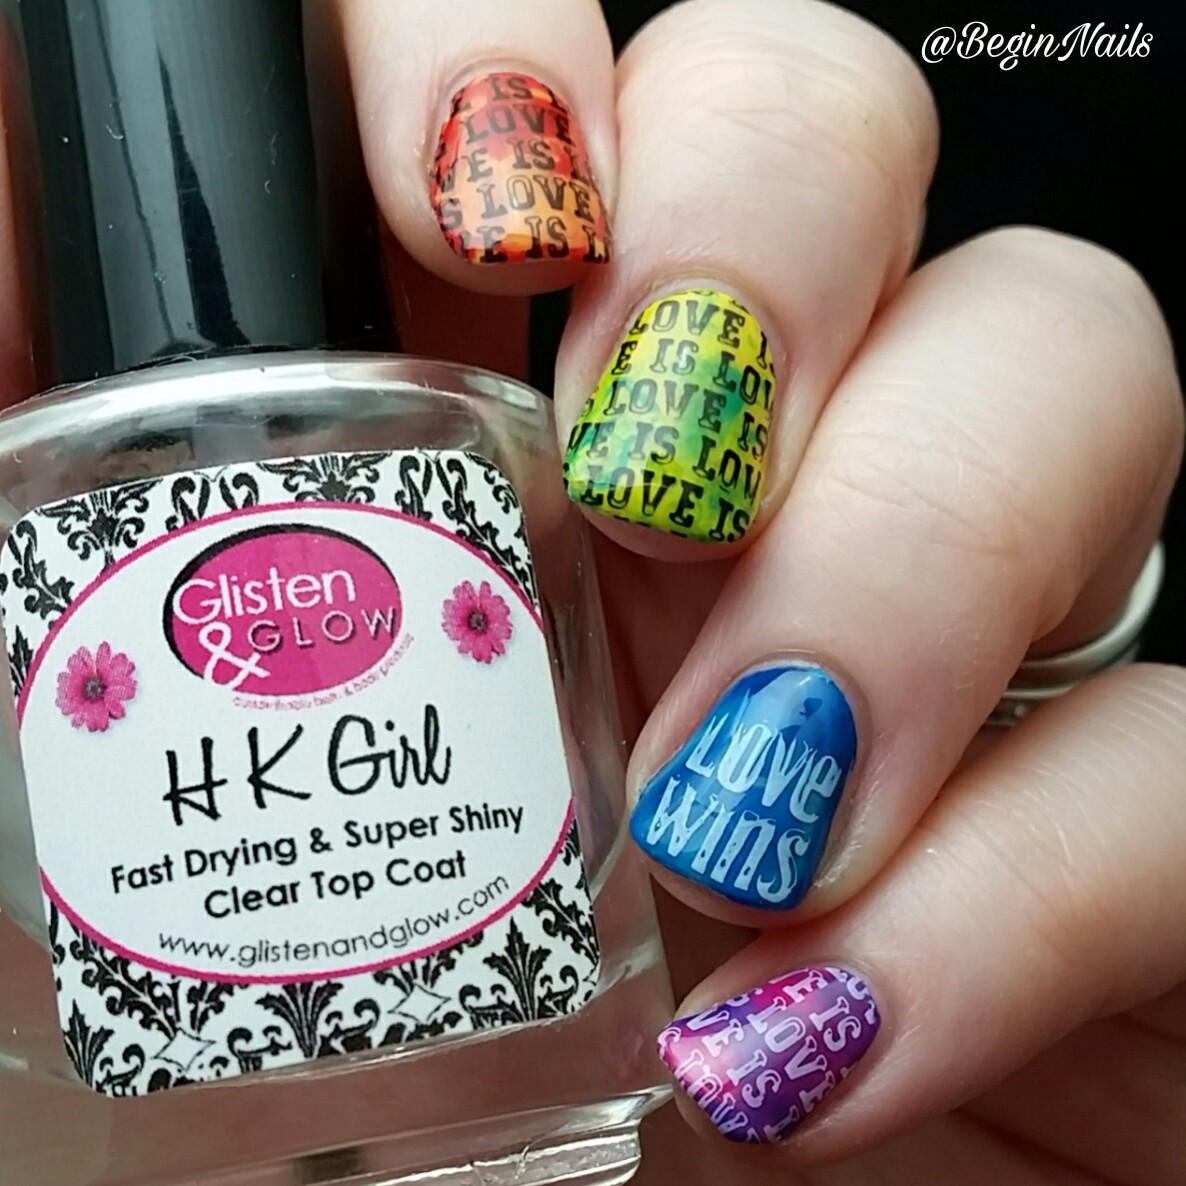 Let\'s Begin Nails: It Girl Nail Art IG118 Stamping Plate Review